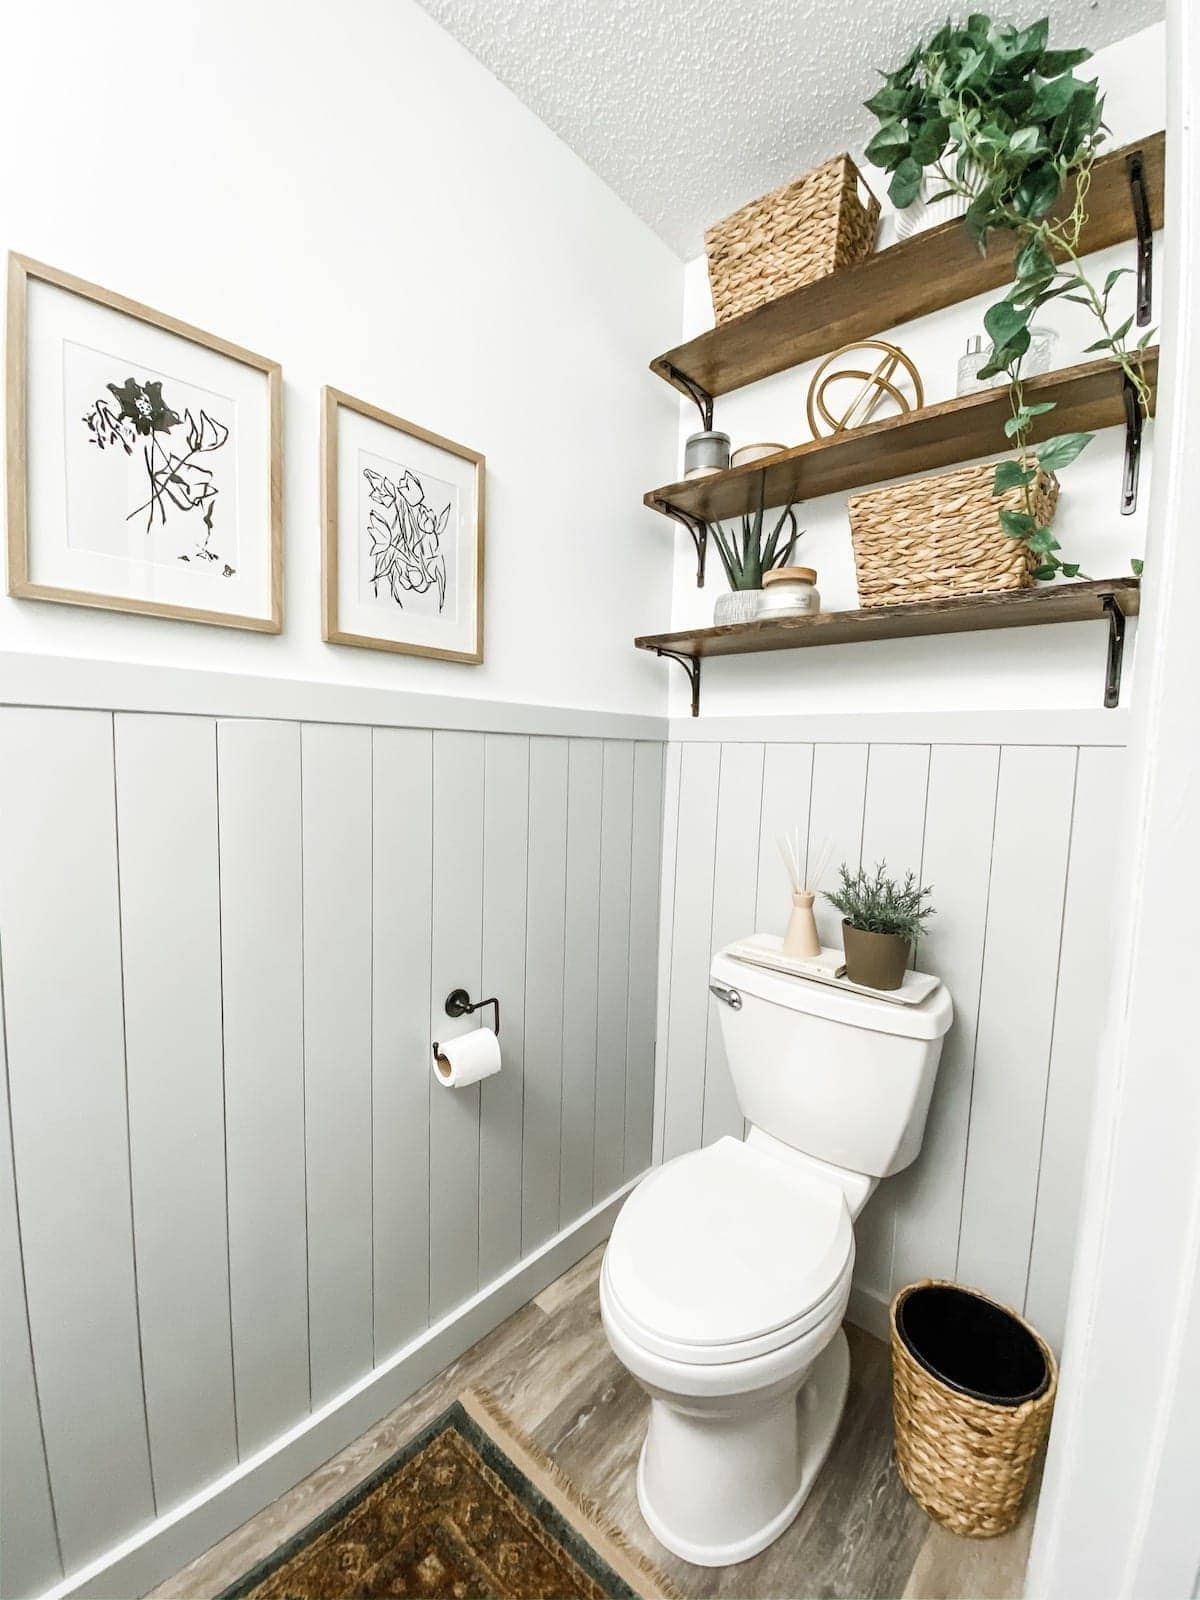 bathroom shelving above toilet with plants and decor